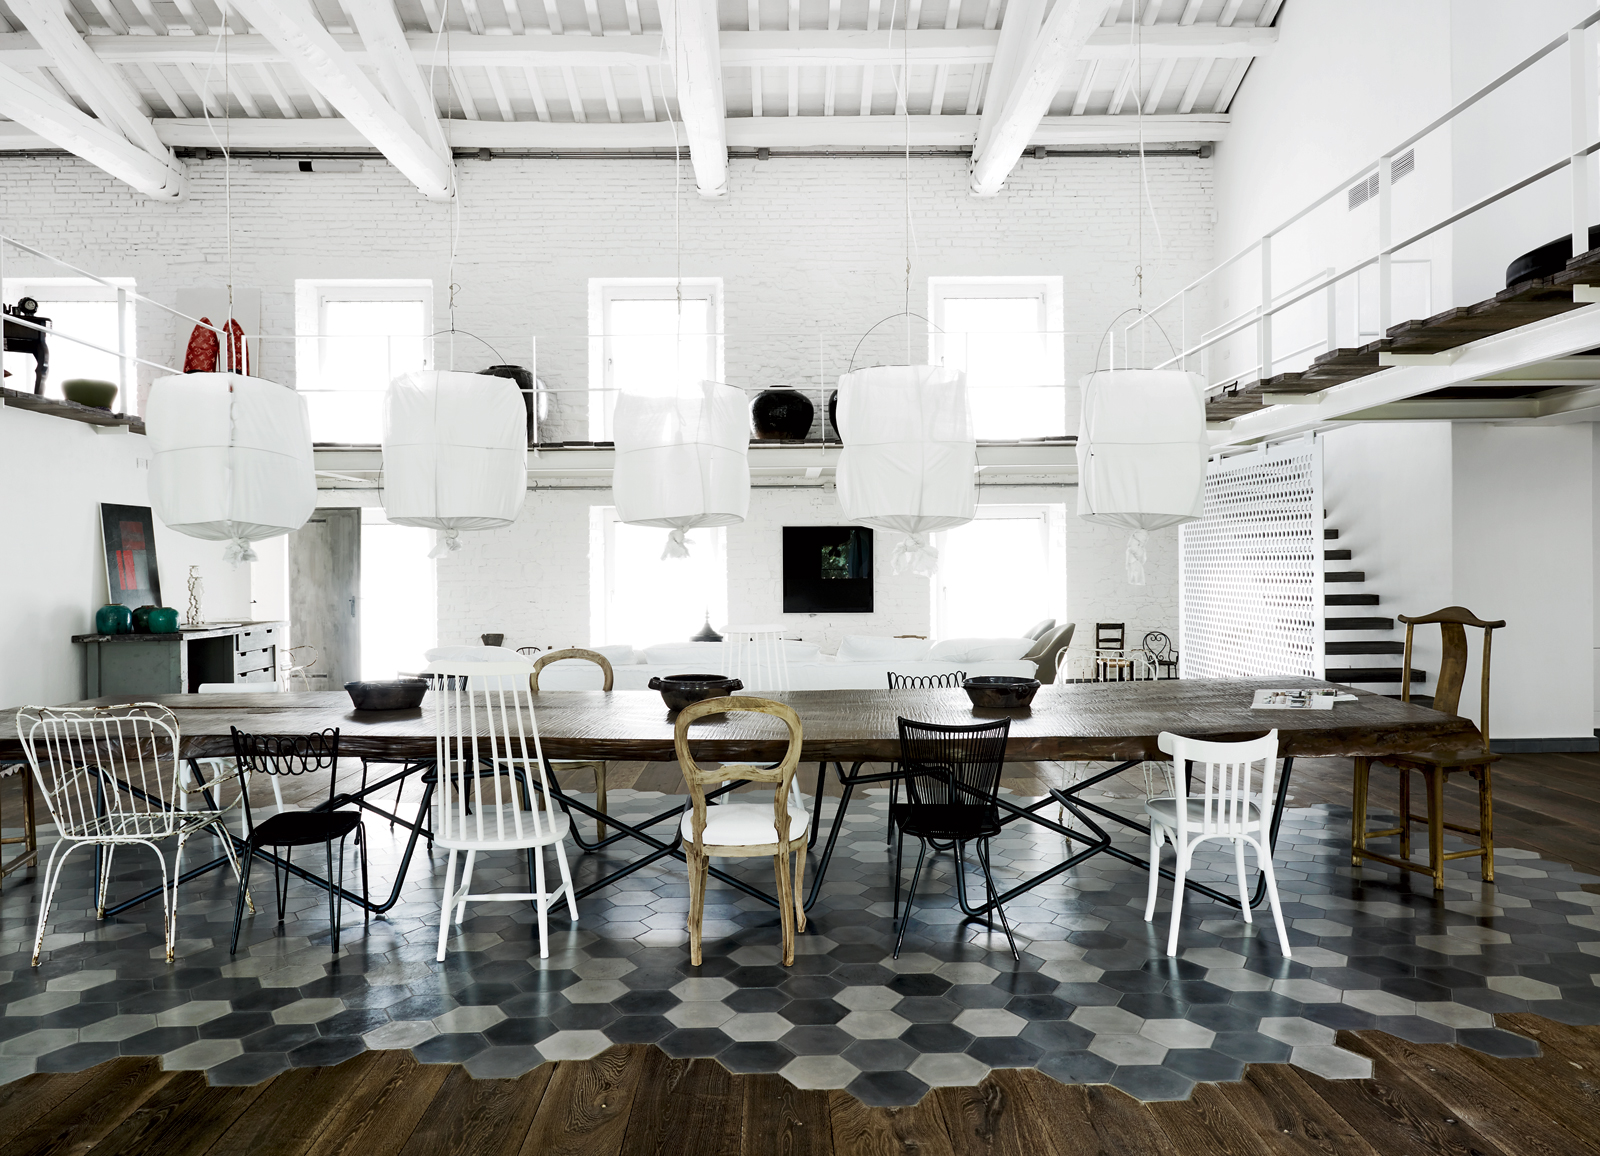 Paloa Navone designed living-dining room with chairs.